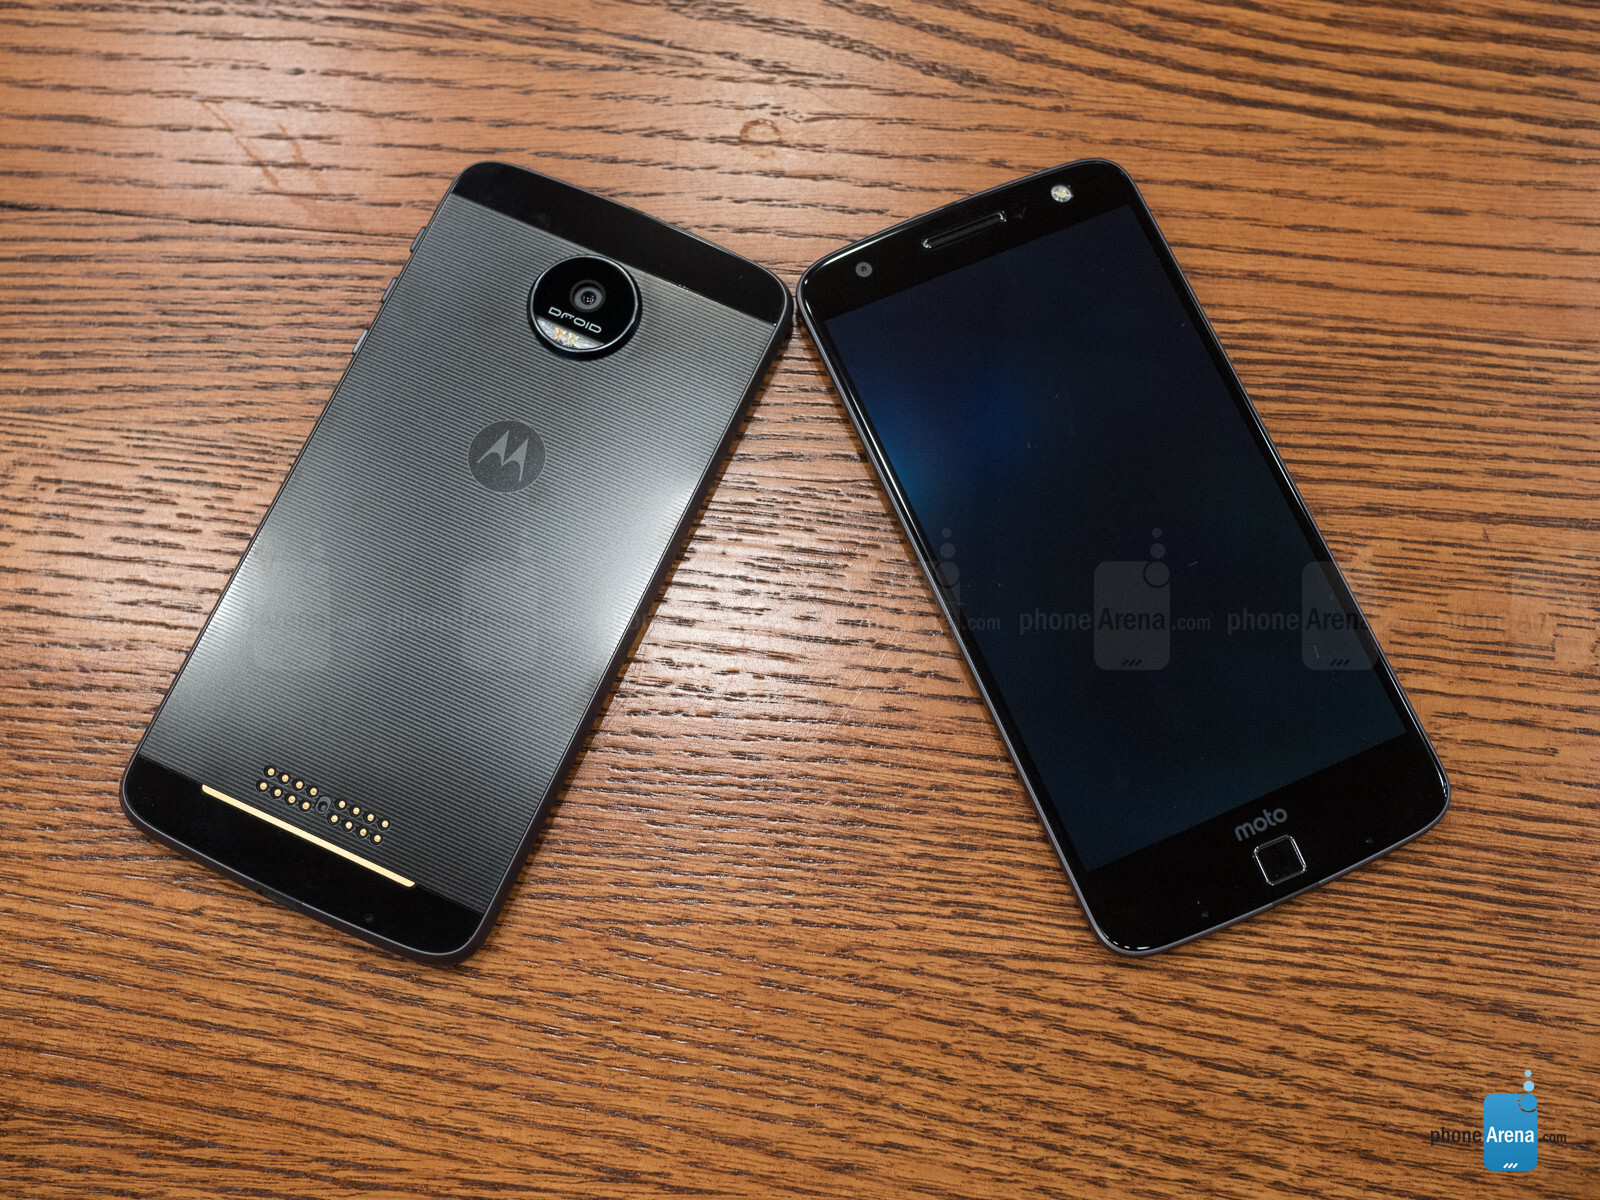 Moto Z Droid and Moto Z Force Droid Review - PhoneArena